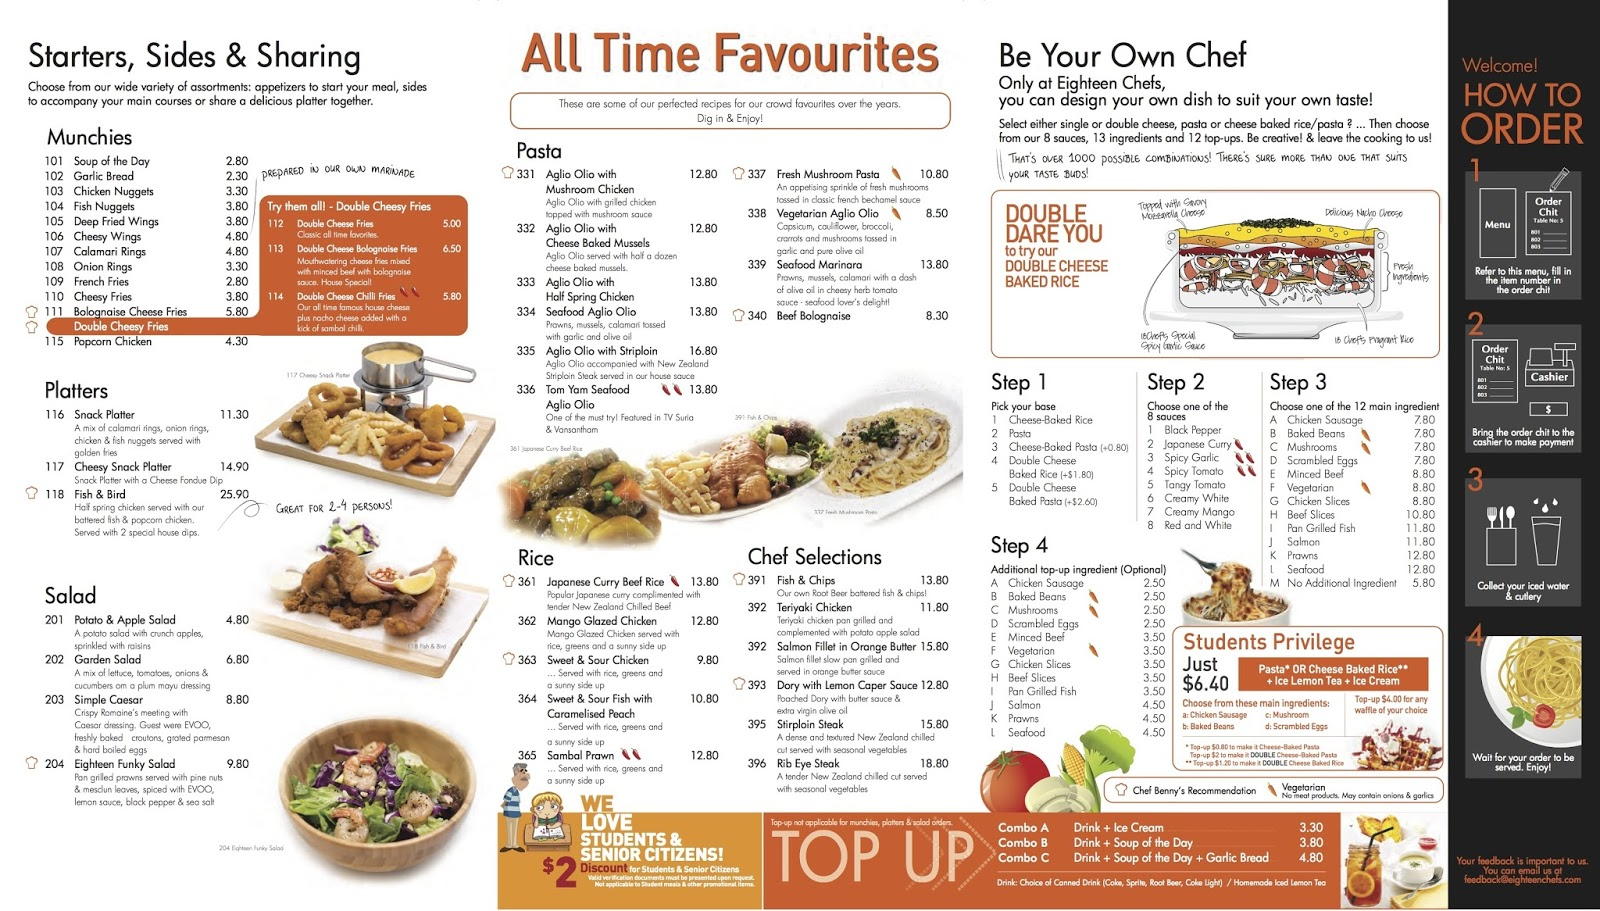 Food review eighteen chefs singapore - I Know I Ve Always Been Talking About Food Food Food And Never Treat You All Ah So This Time I M Gonna Treat 1 Lucky Reader Of